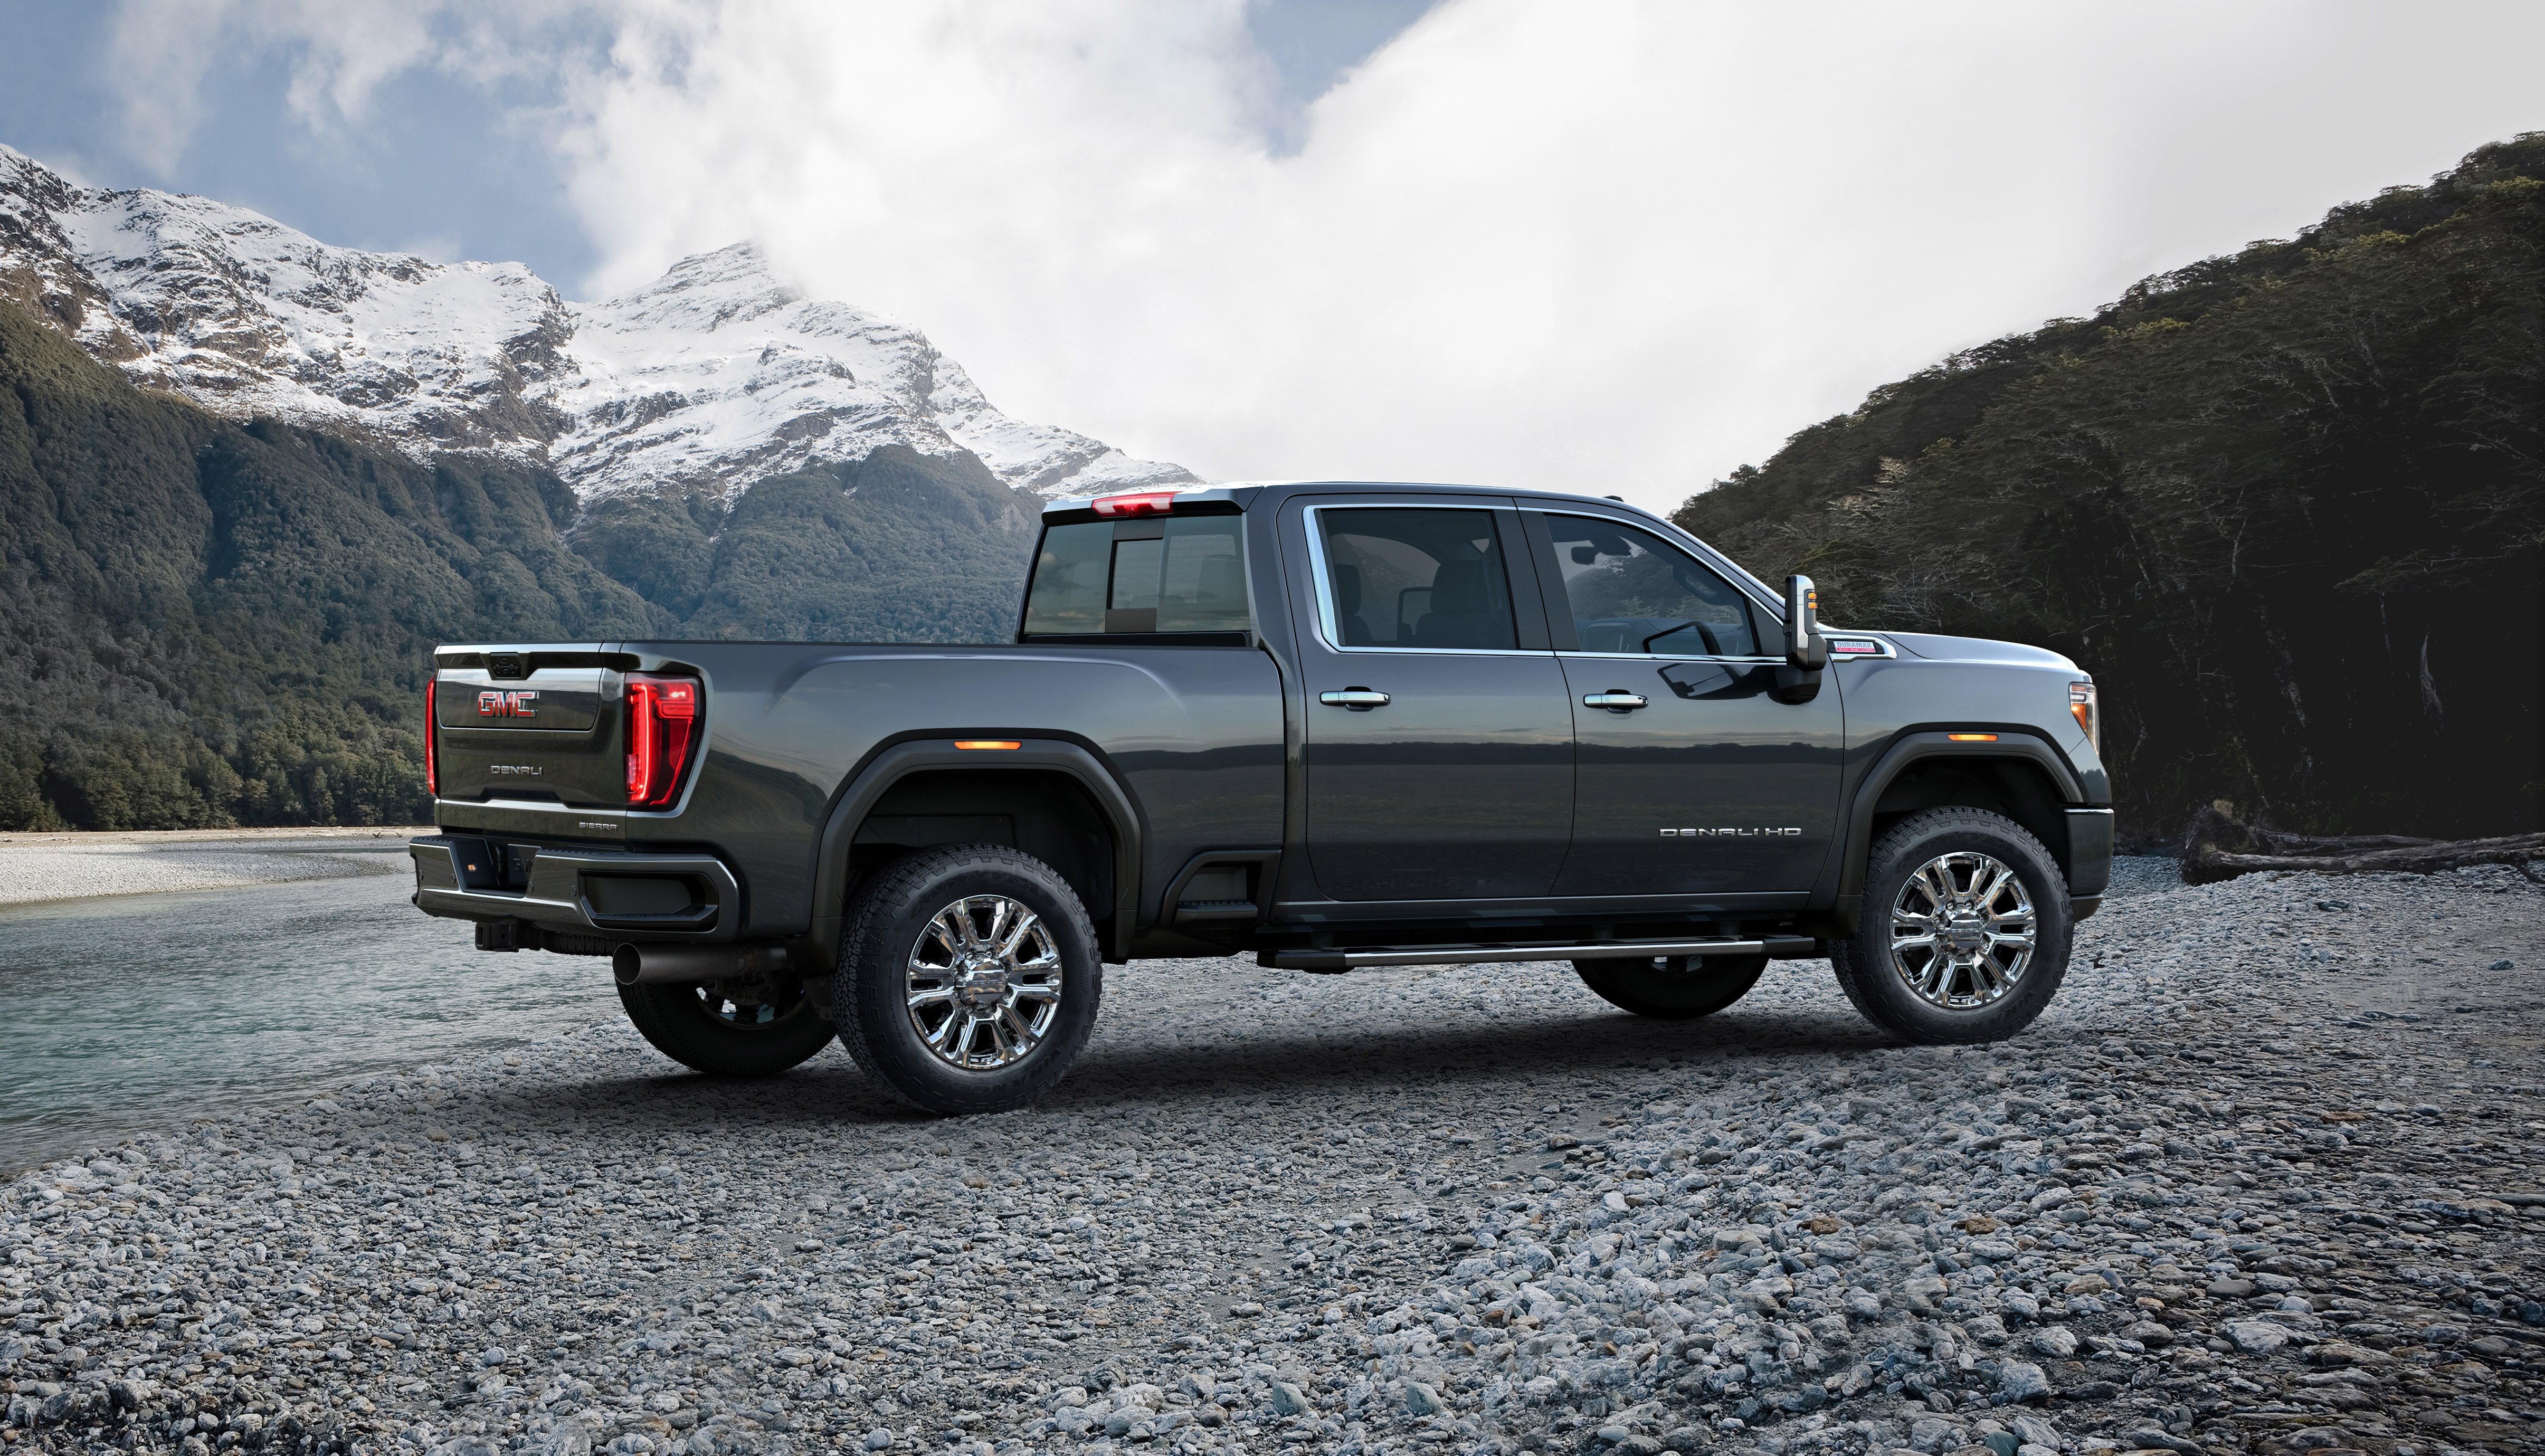 The GMC Sierra 2500HD parked off road in the mountains.